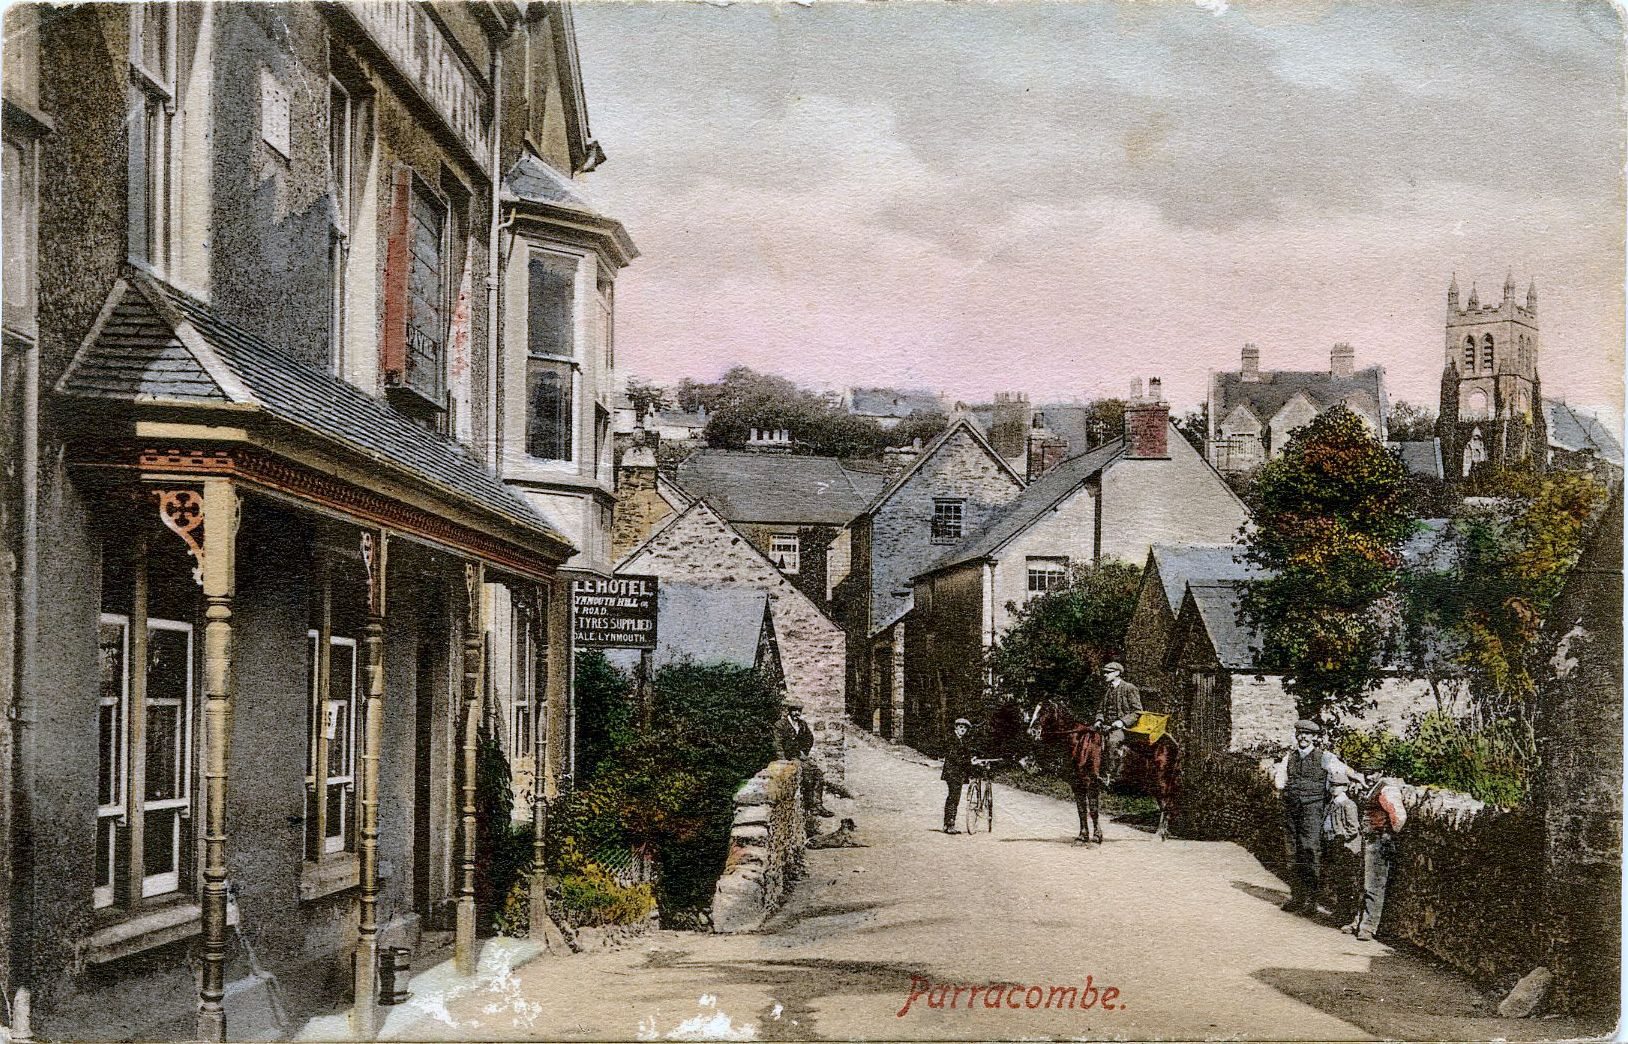 Postcard of 'Parracombe' - kind permission of the Antell Family